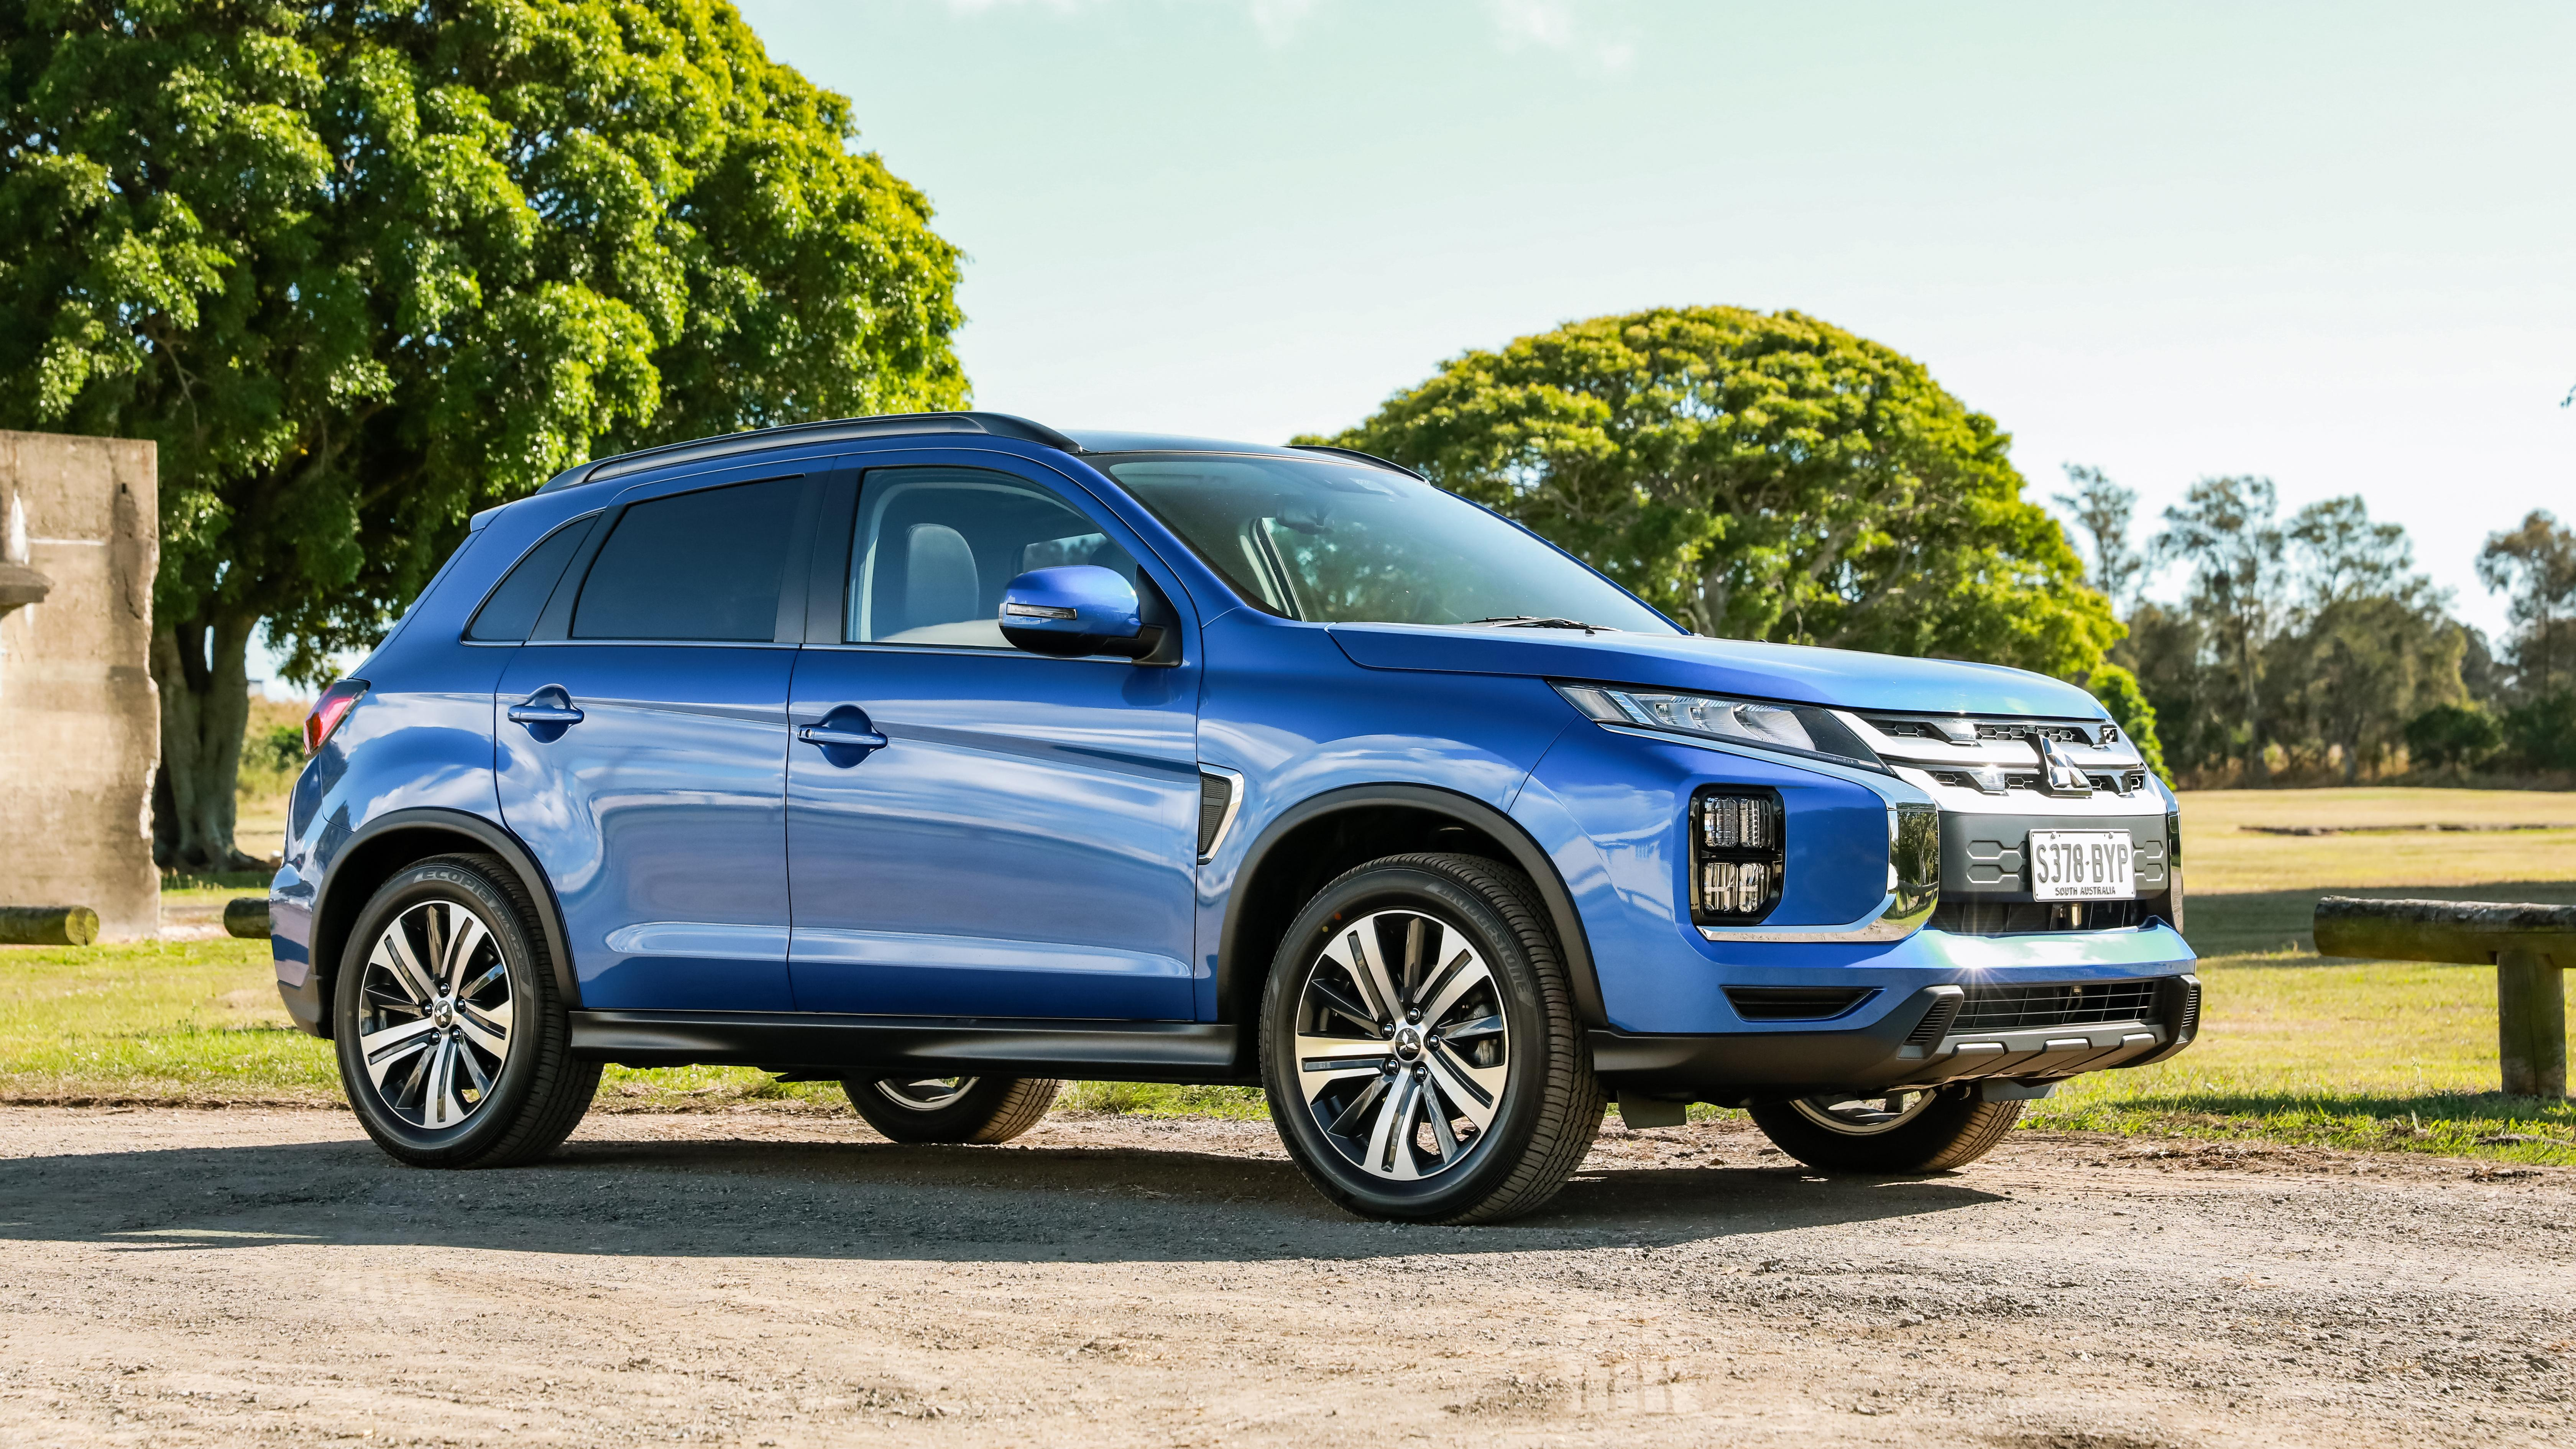 2021 Mitsubishi ASX price and specs: Range gains four limited editions